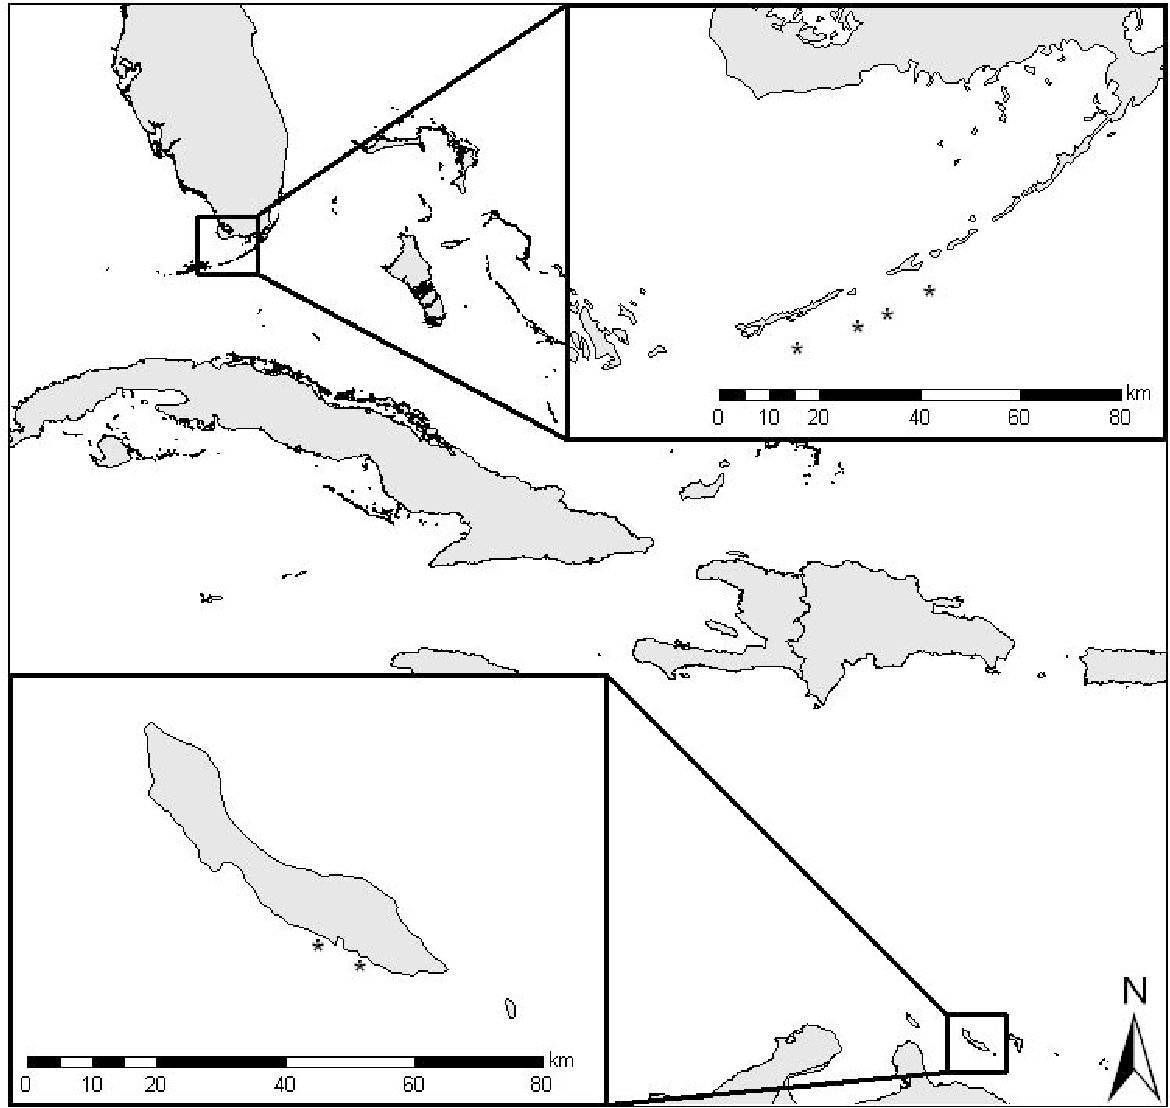 Figure 3-1: Location of survey sites (*). Florida Keys sites were located on the bank-barrier reefs offshore of Long Key and Marathon. Curacao sites were located at two locations immediately offshore of the southwest leeward side of the island.